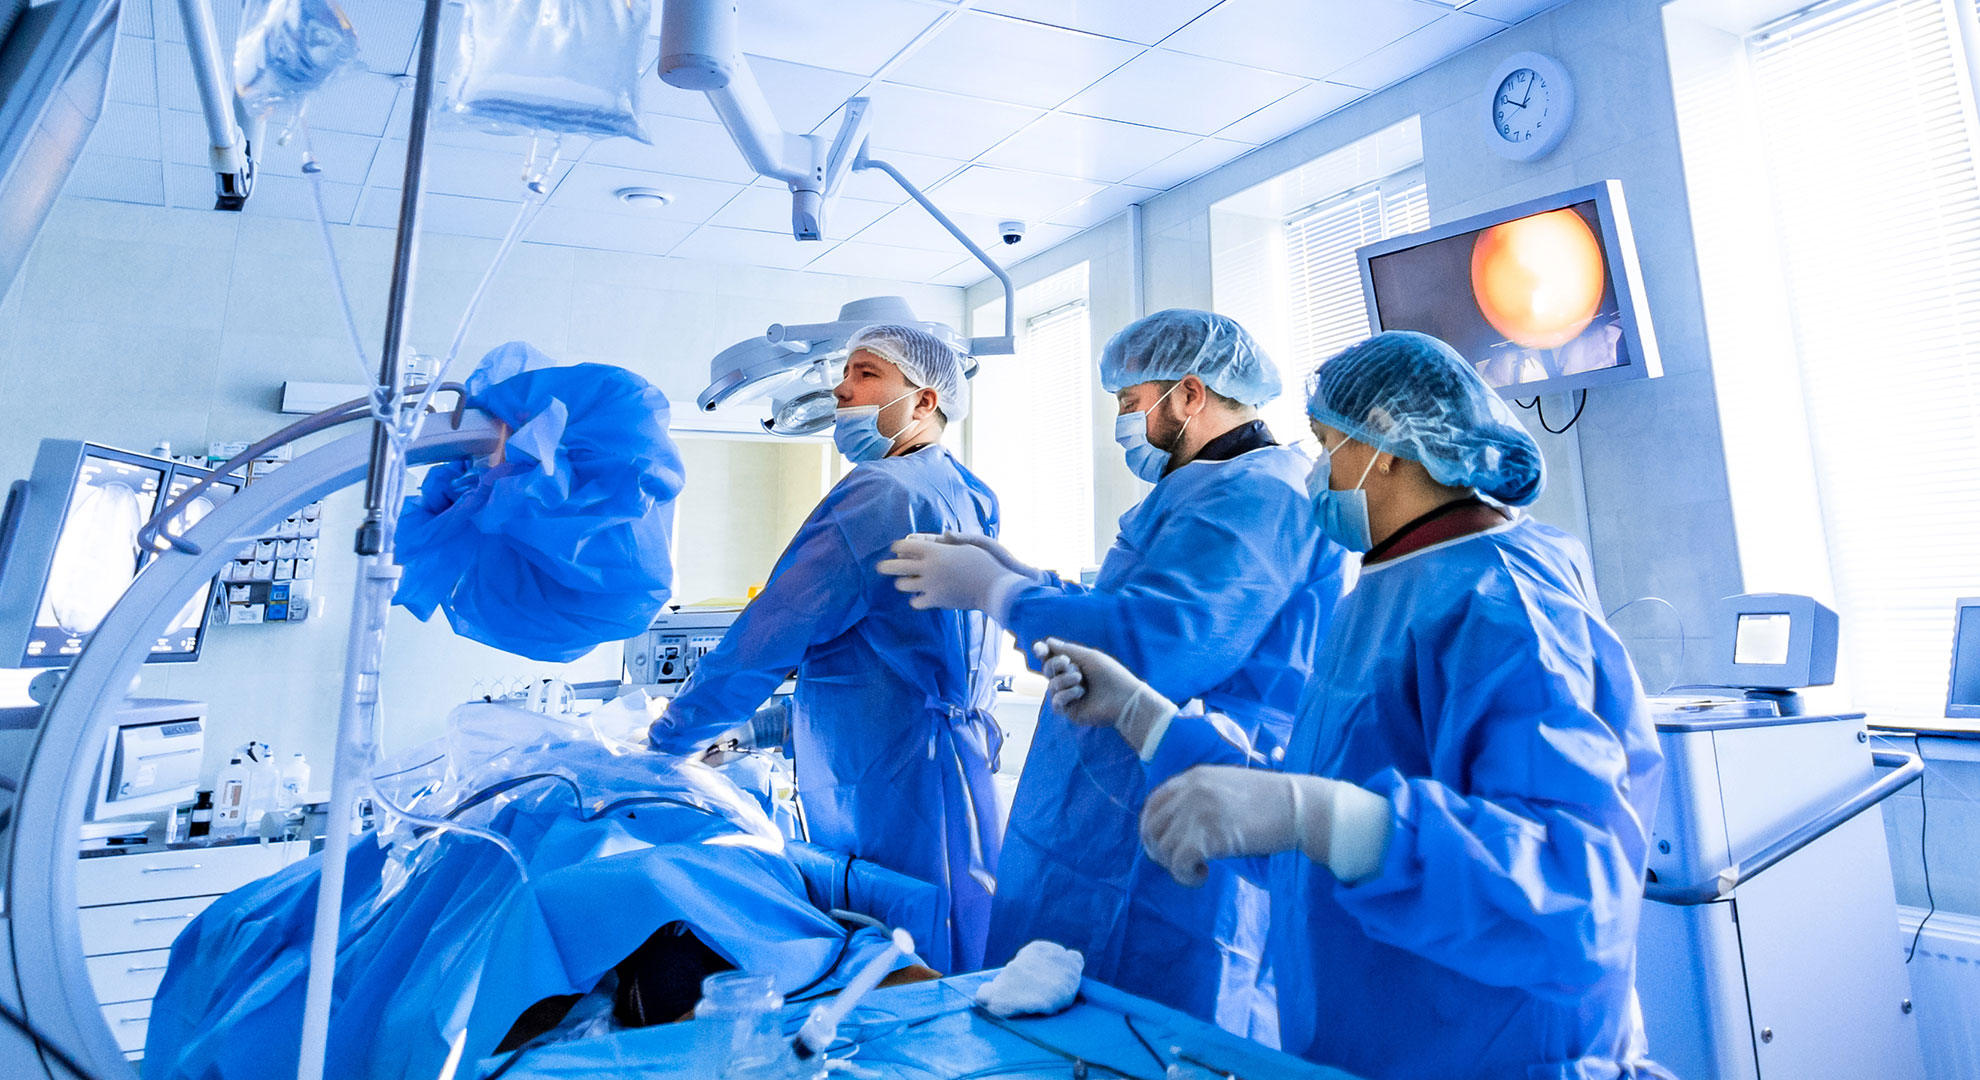 Air purification in operating rooms